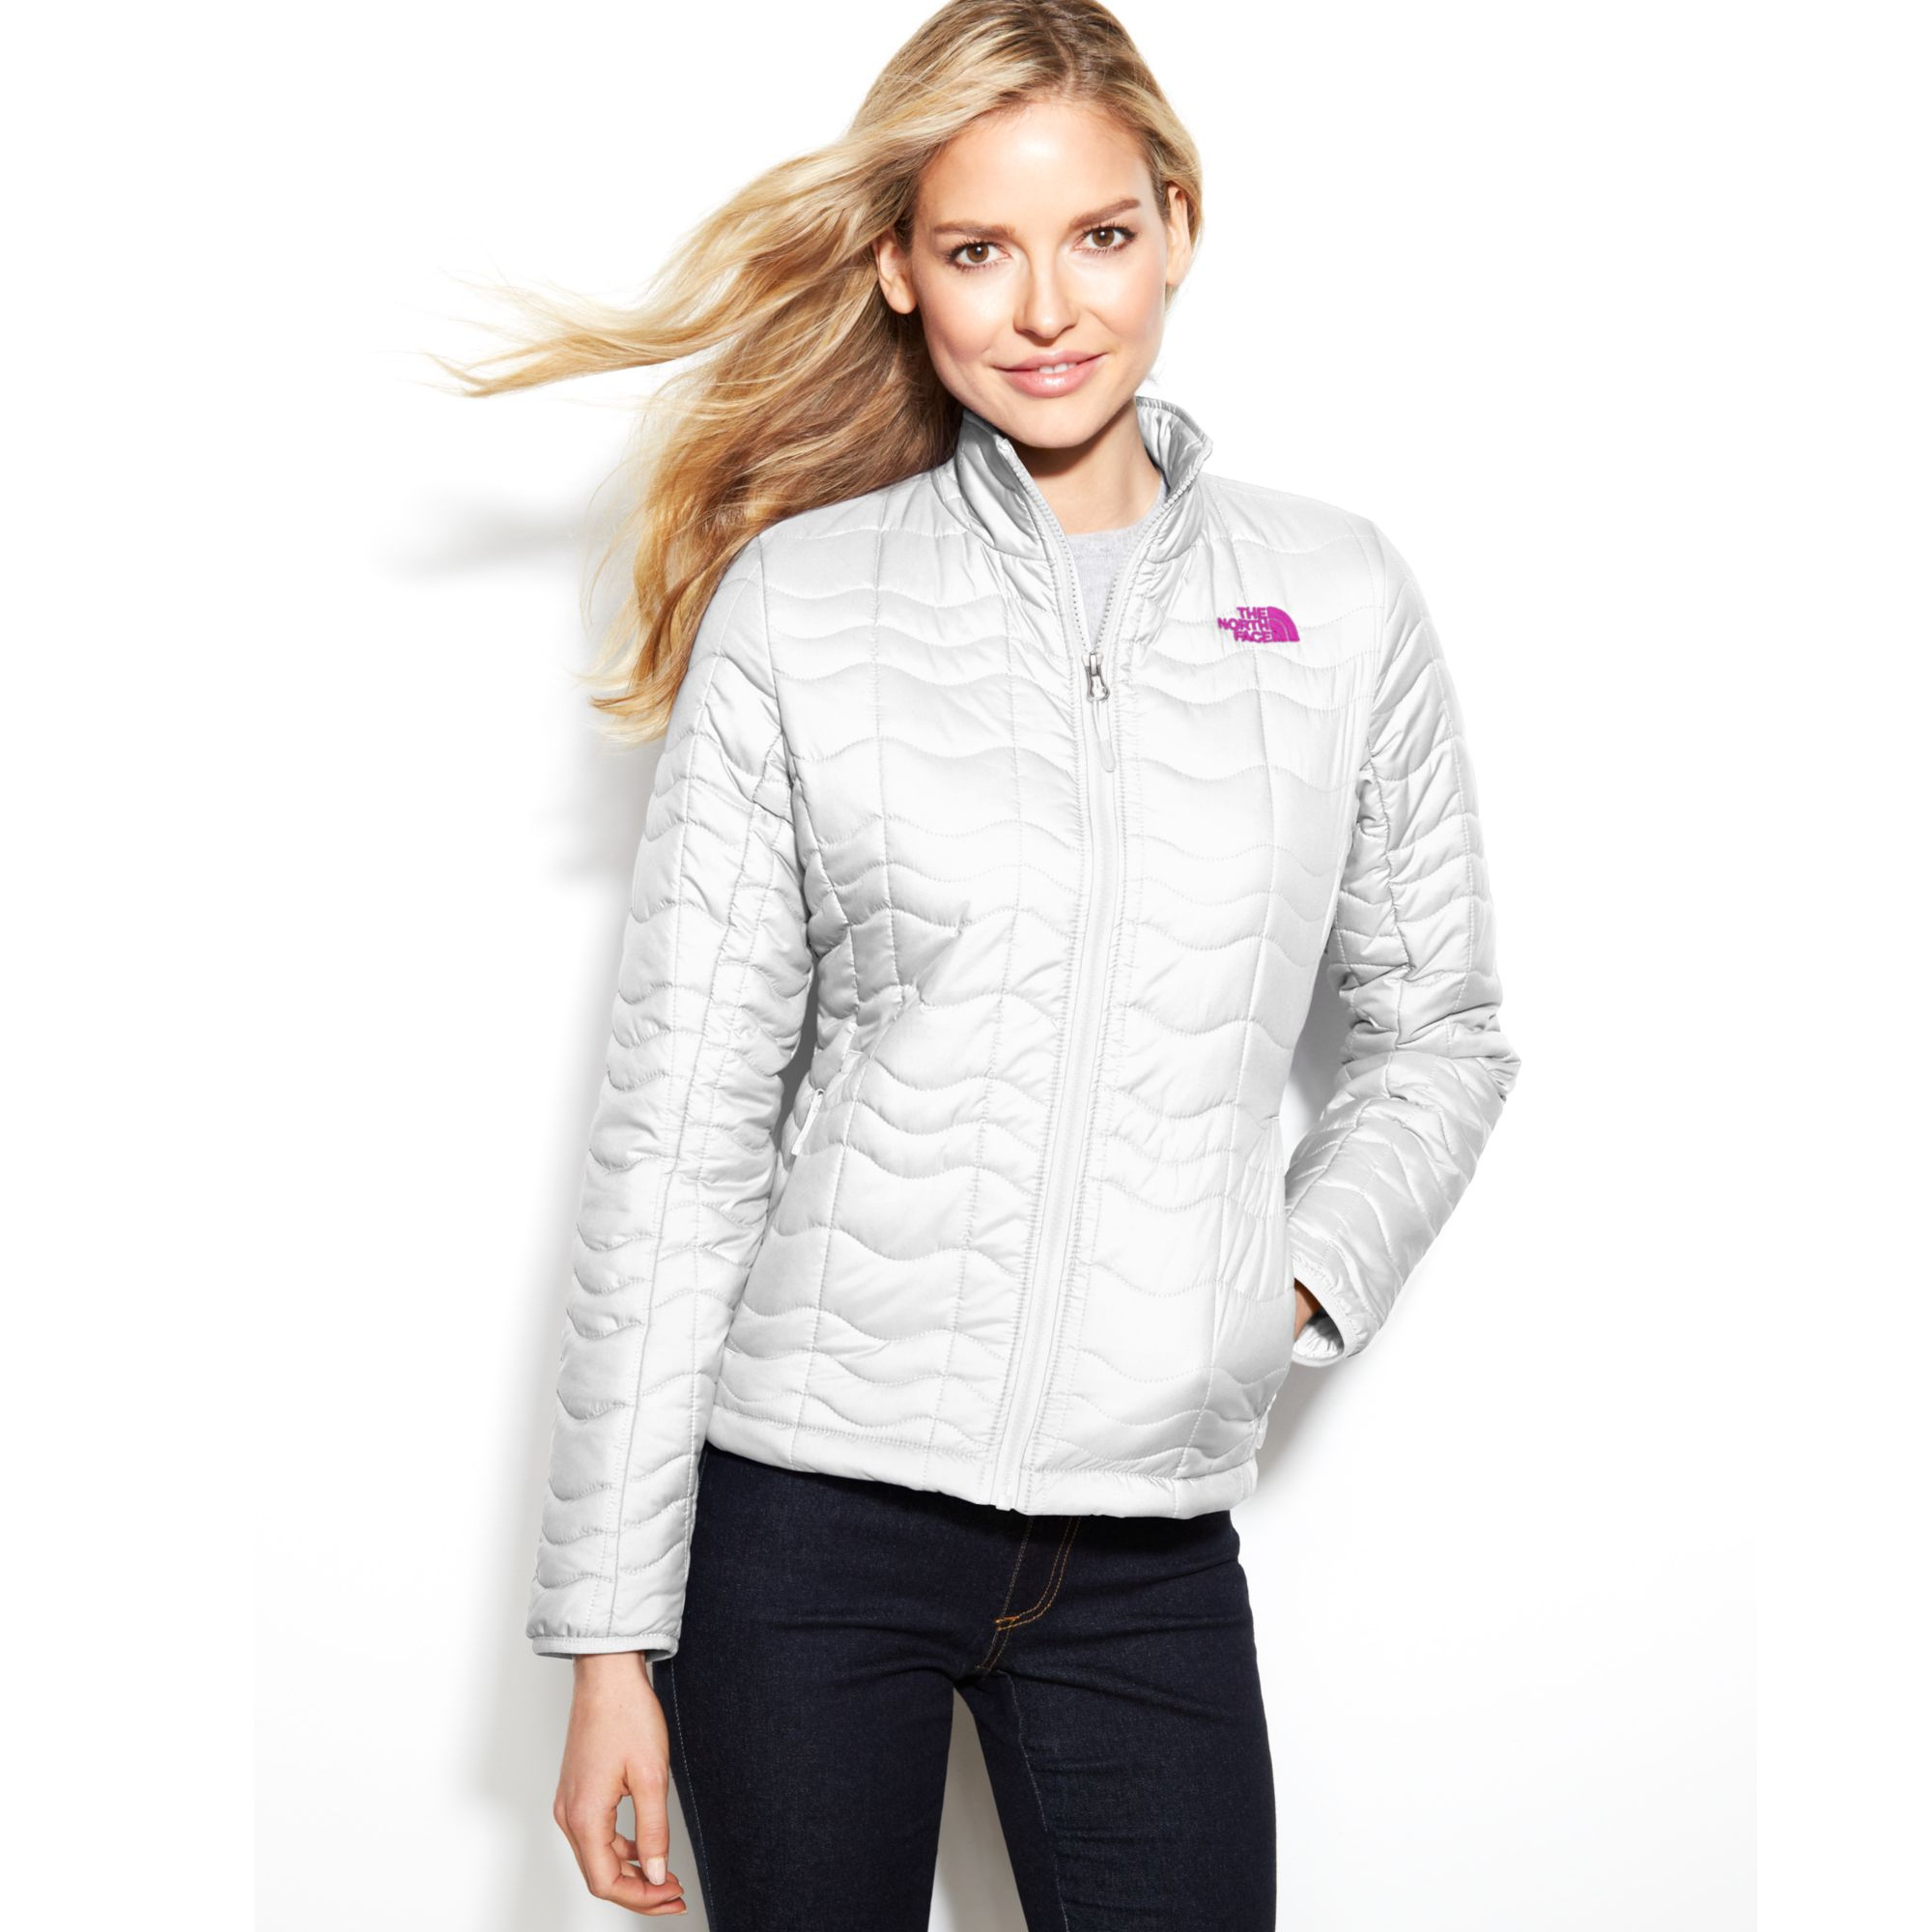 ... coupon lyst the north face bombay quilted jacket in white 5d83d 46a41 63849307a